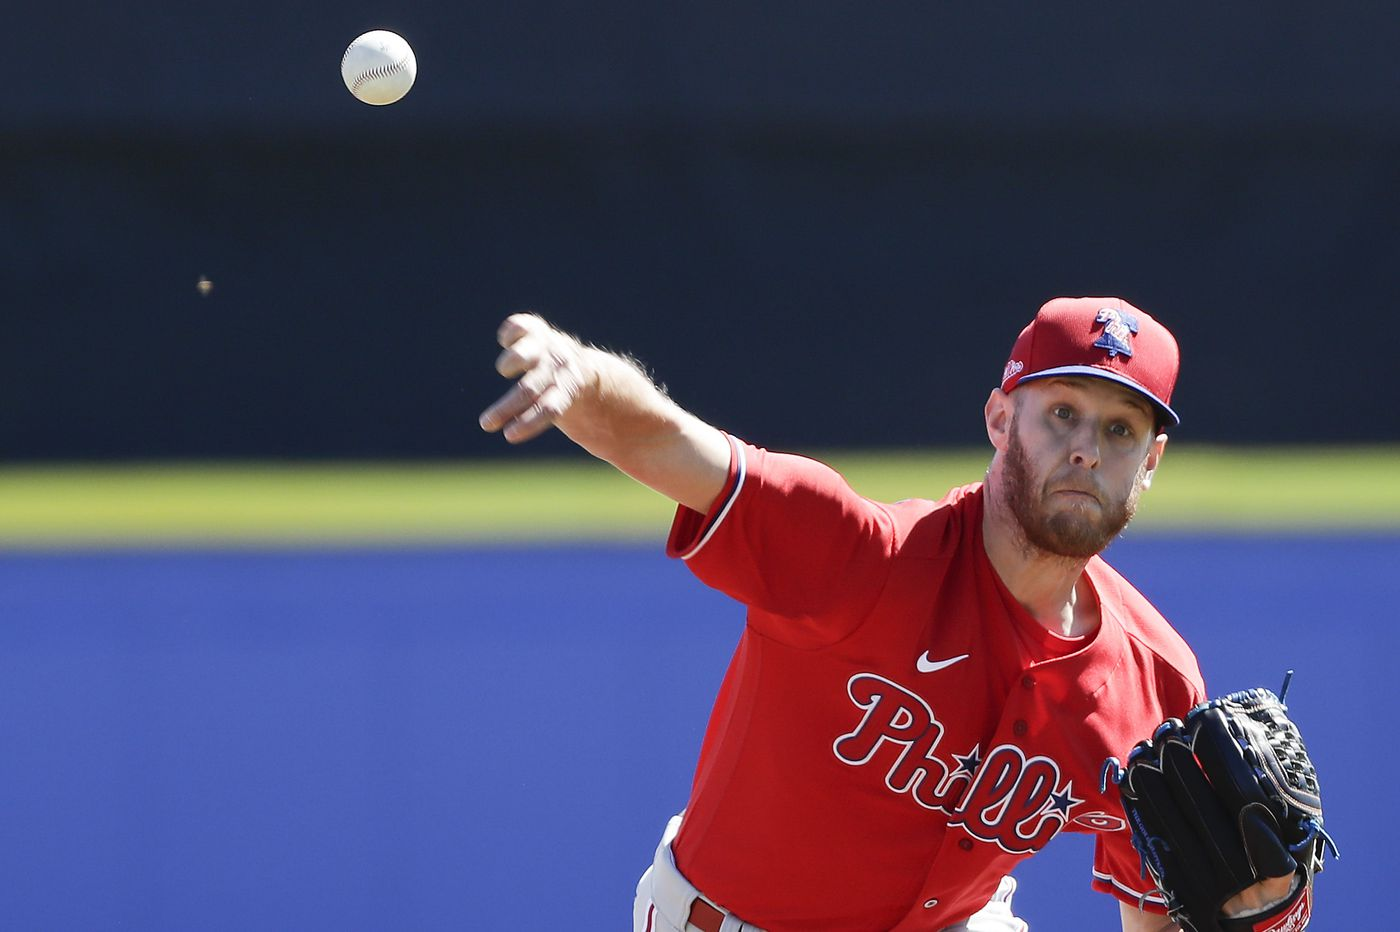 Zack Wheeler's first Phillies spring training resembles his exhibition work with Mets | Extra Innings